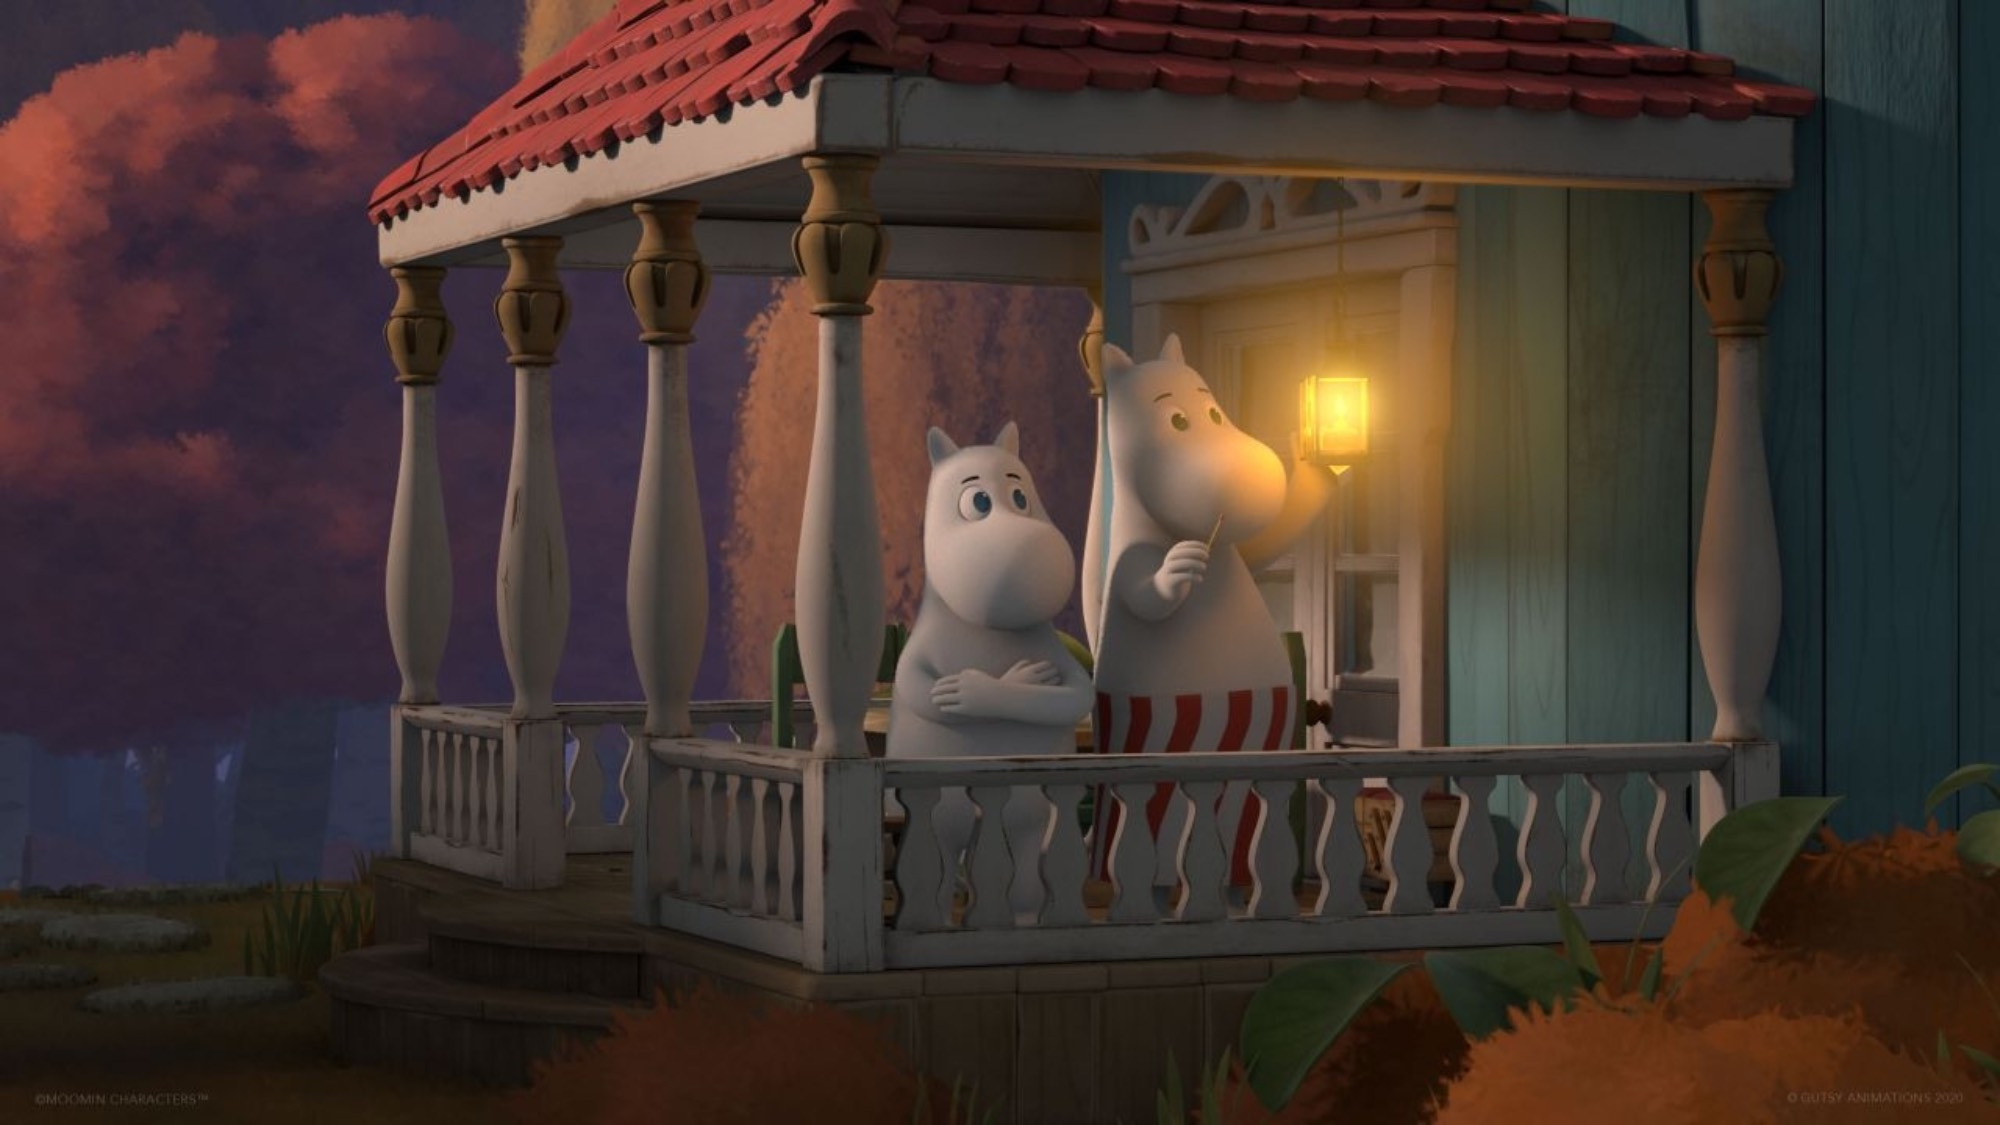 Moomin and his mom standing on the porch of their house